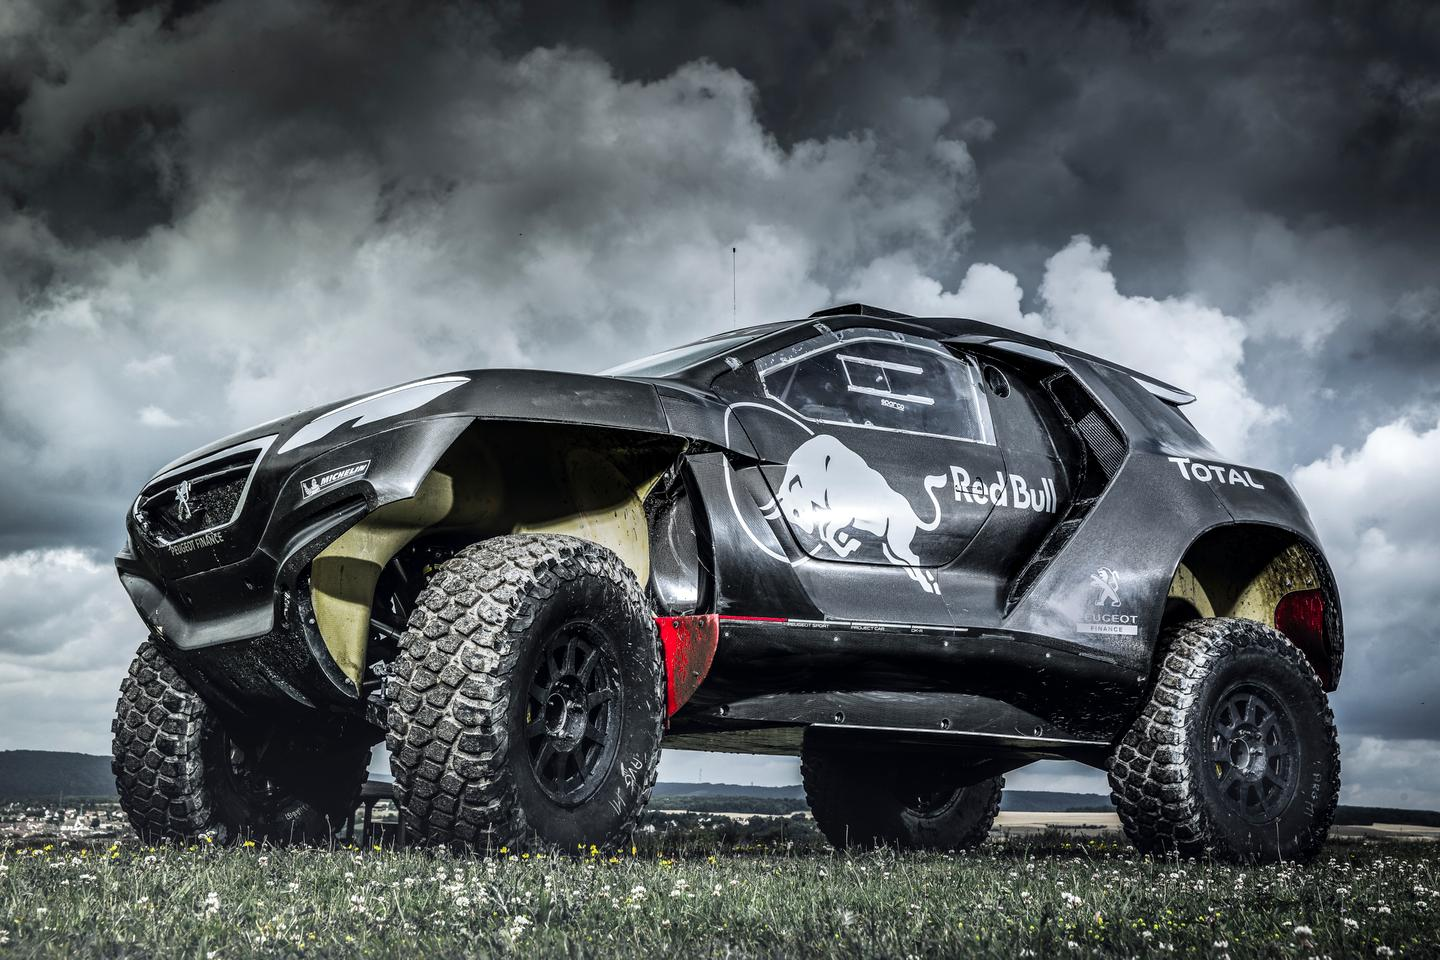 The 2008 DKR rides on double wishbone suspension (Photo: Red Bull Content Pool)